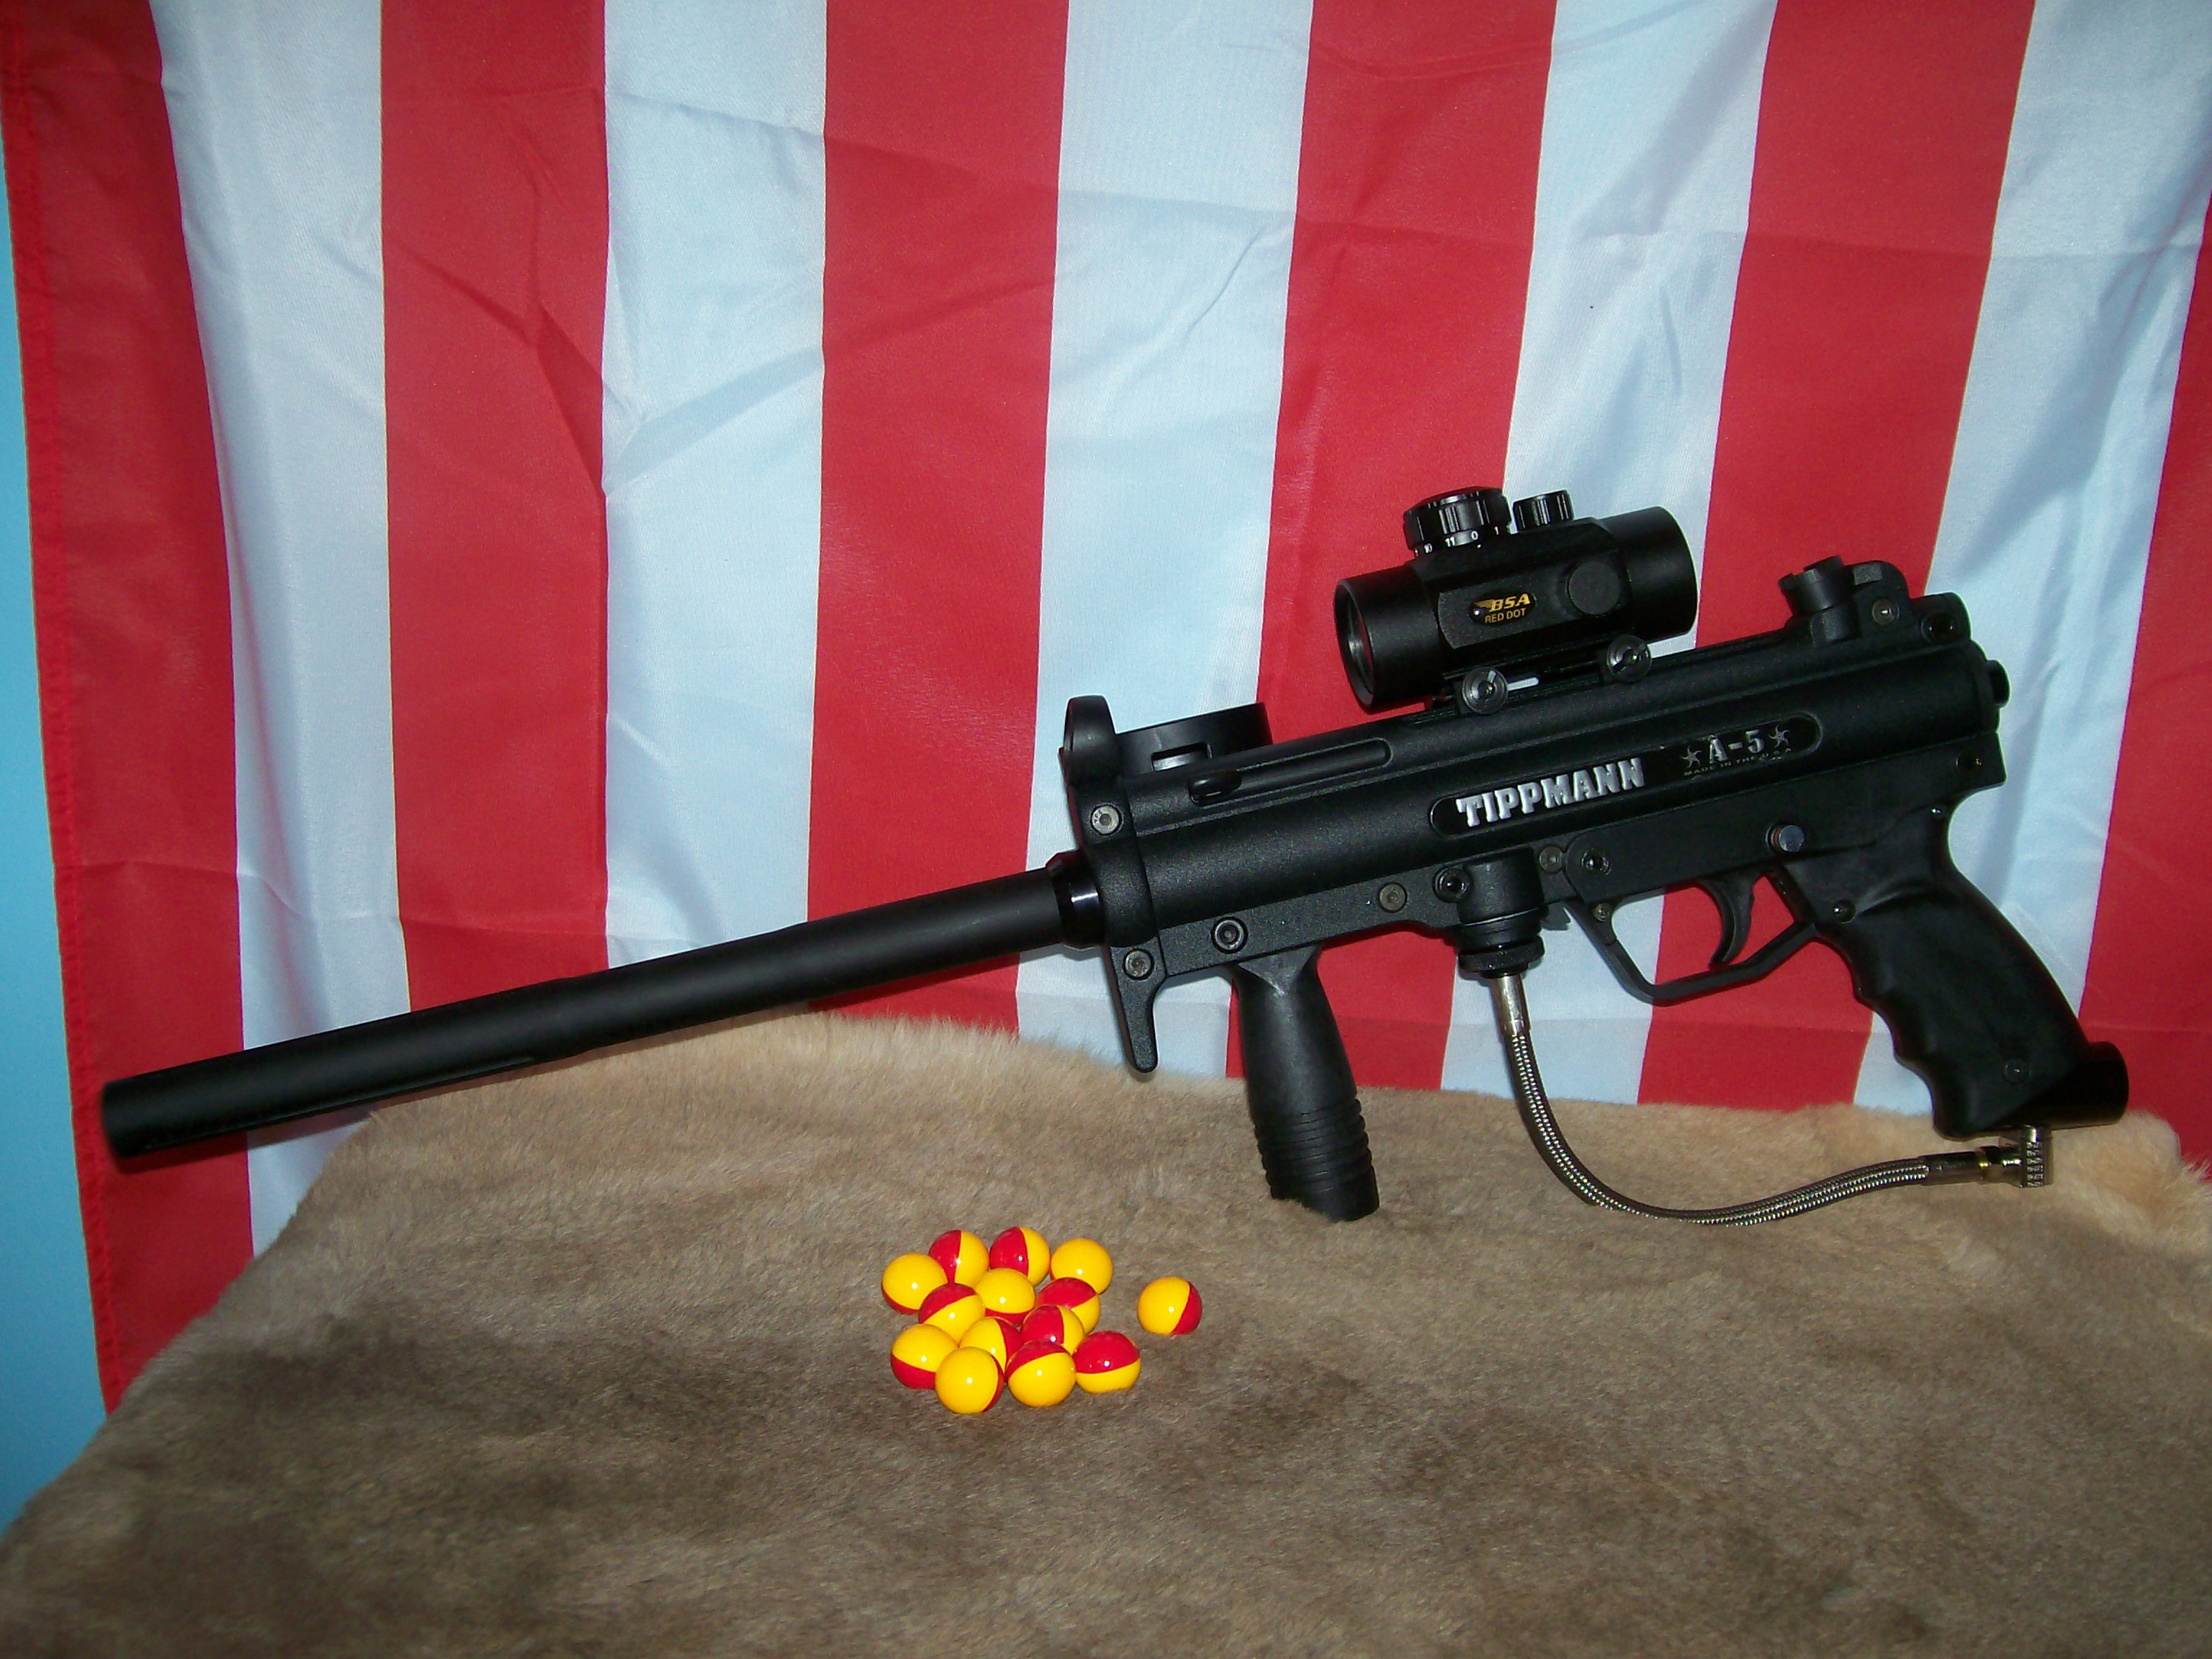 Tippmann A 5 Wikipedia 98 Custom Parts Diagram Basic With Aftermarket 12 Ceramic Barrel By Jj And Bsa 30mm Red Dot Sight